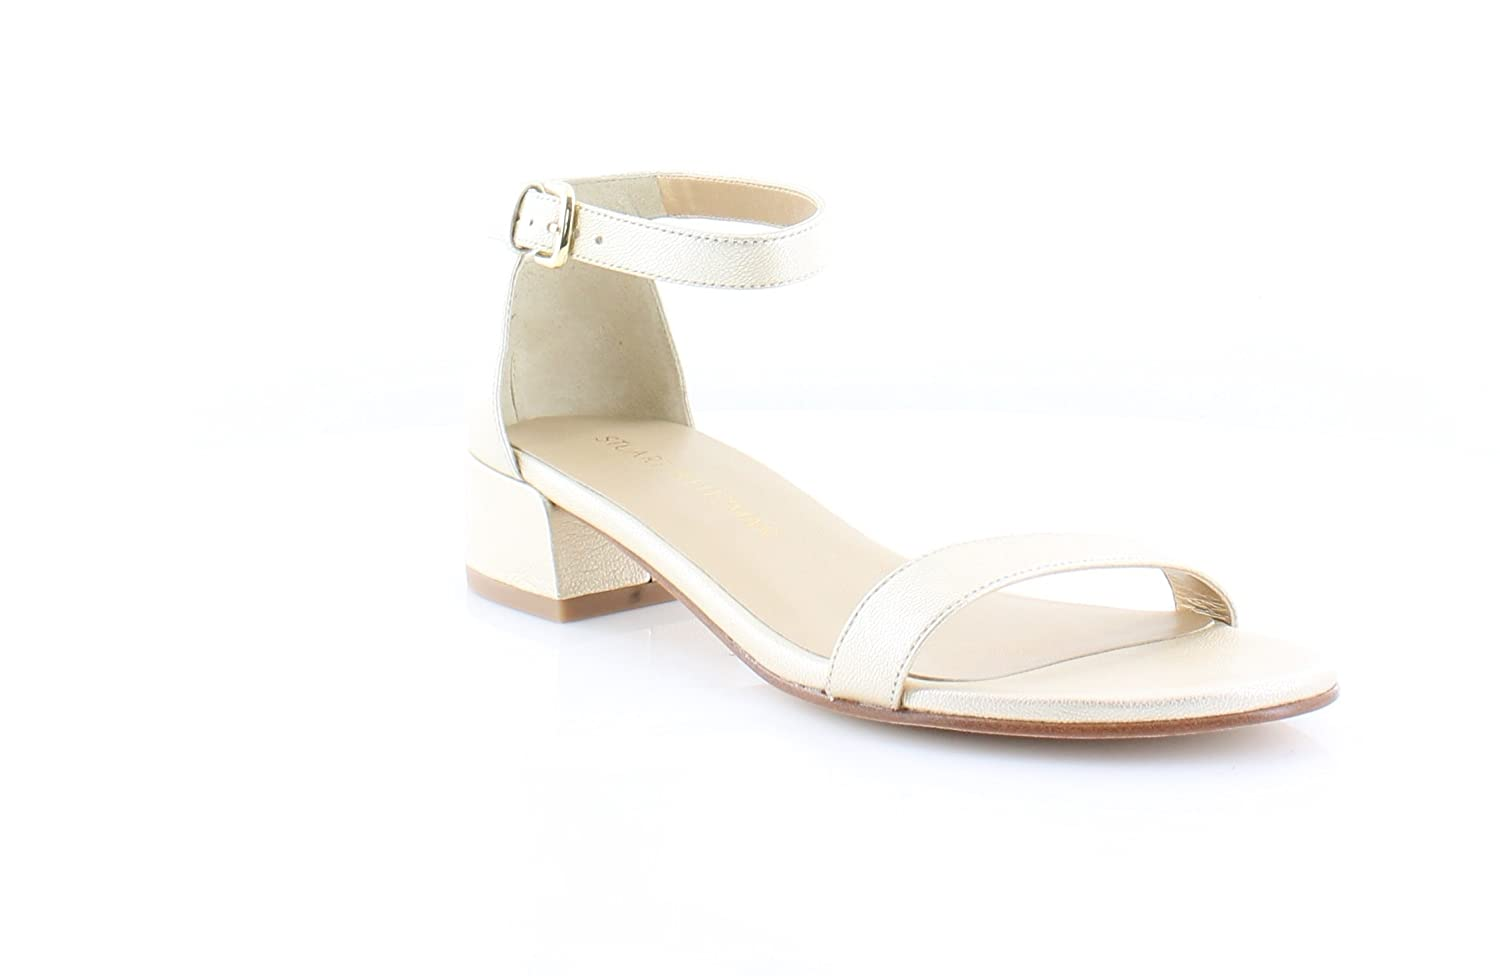 Sun Washed Stuart Weitzman Womens Leather Open Toe Casual Ankle Strap Sandals